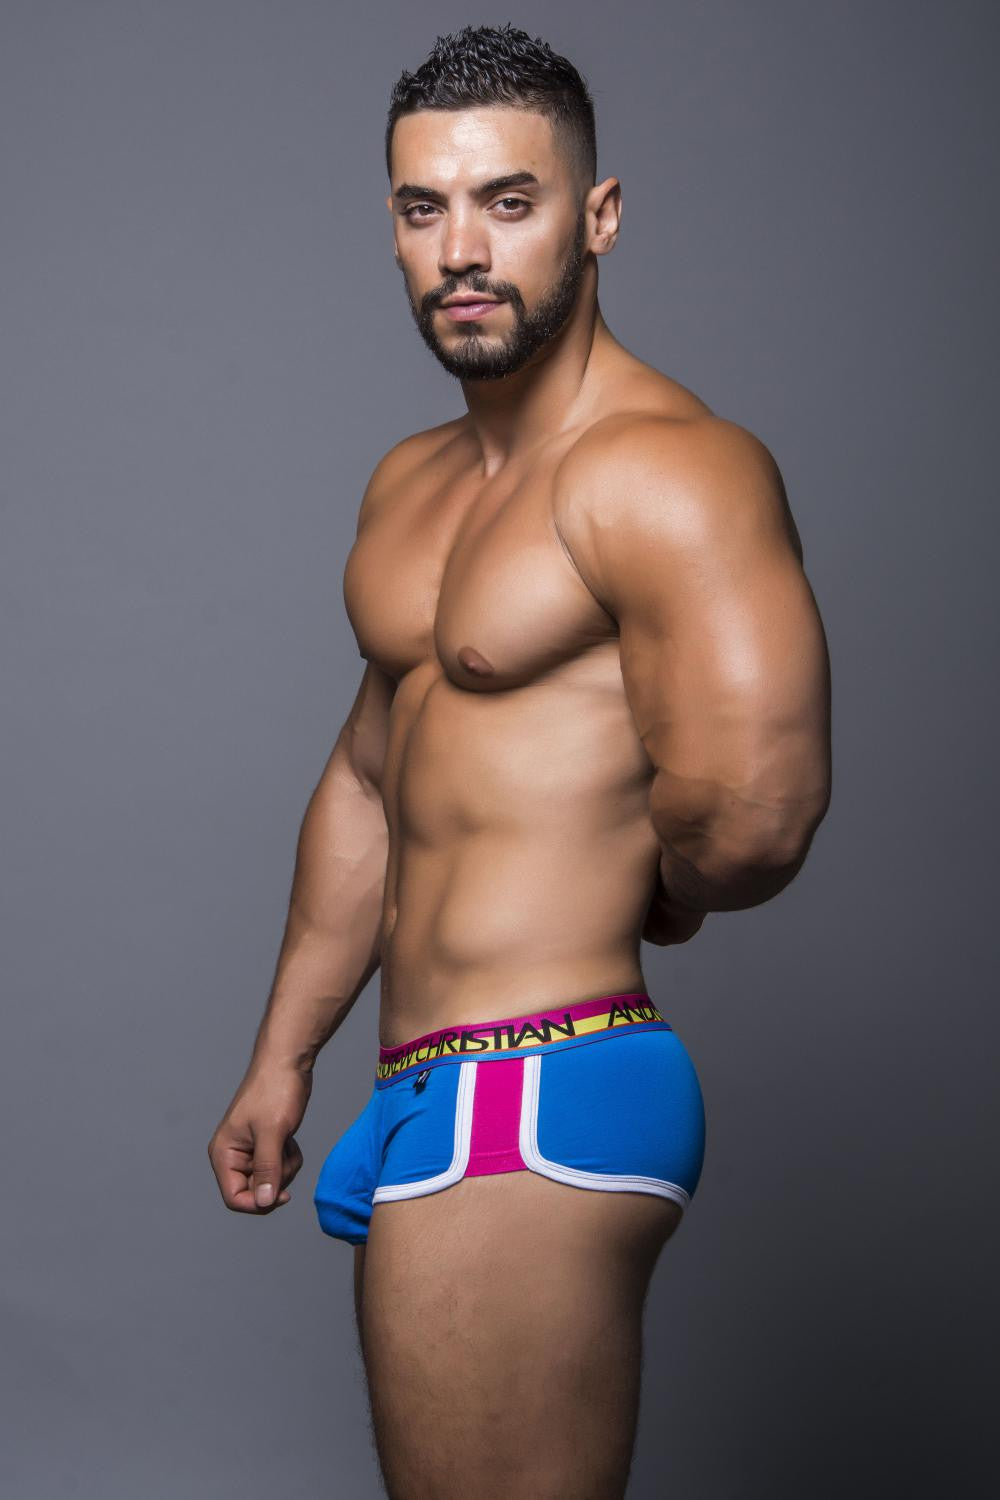 Andrew Christian – Bóxer Retro Pop con Show It!